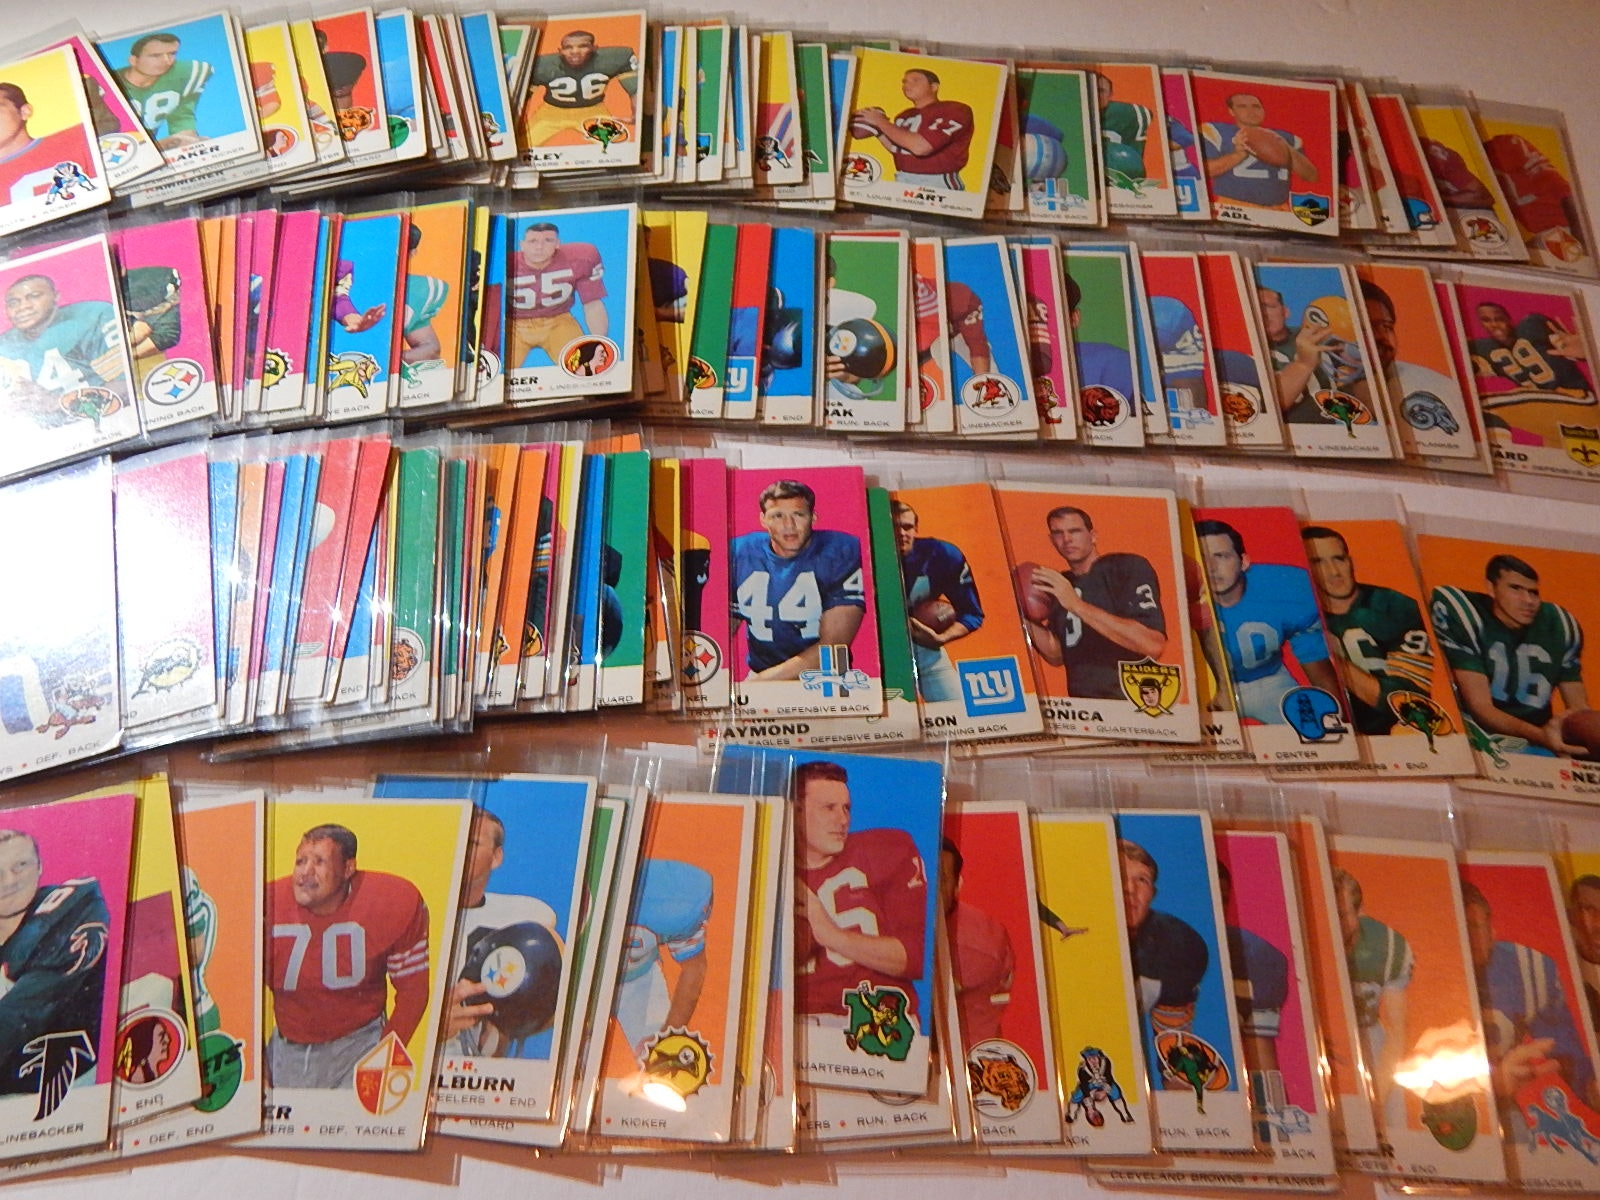 1969 Topps Football Card Collection - Over 150 Card Count